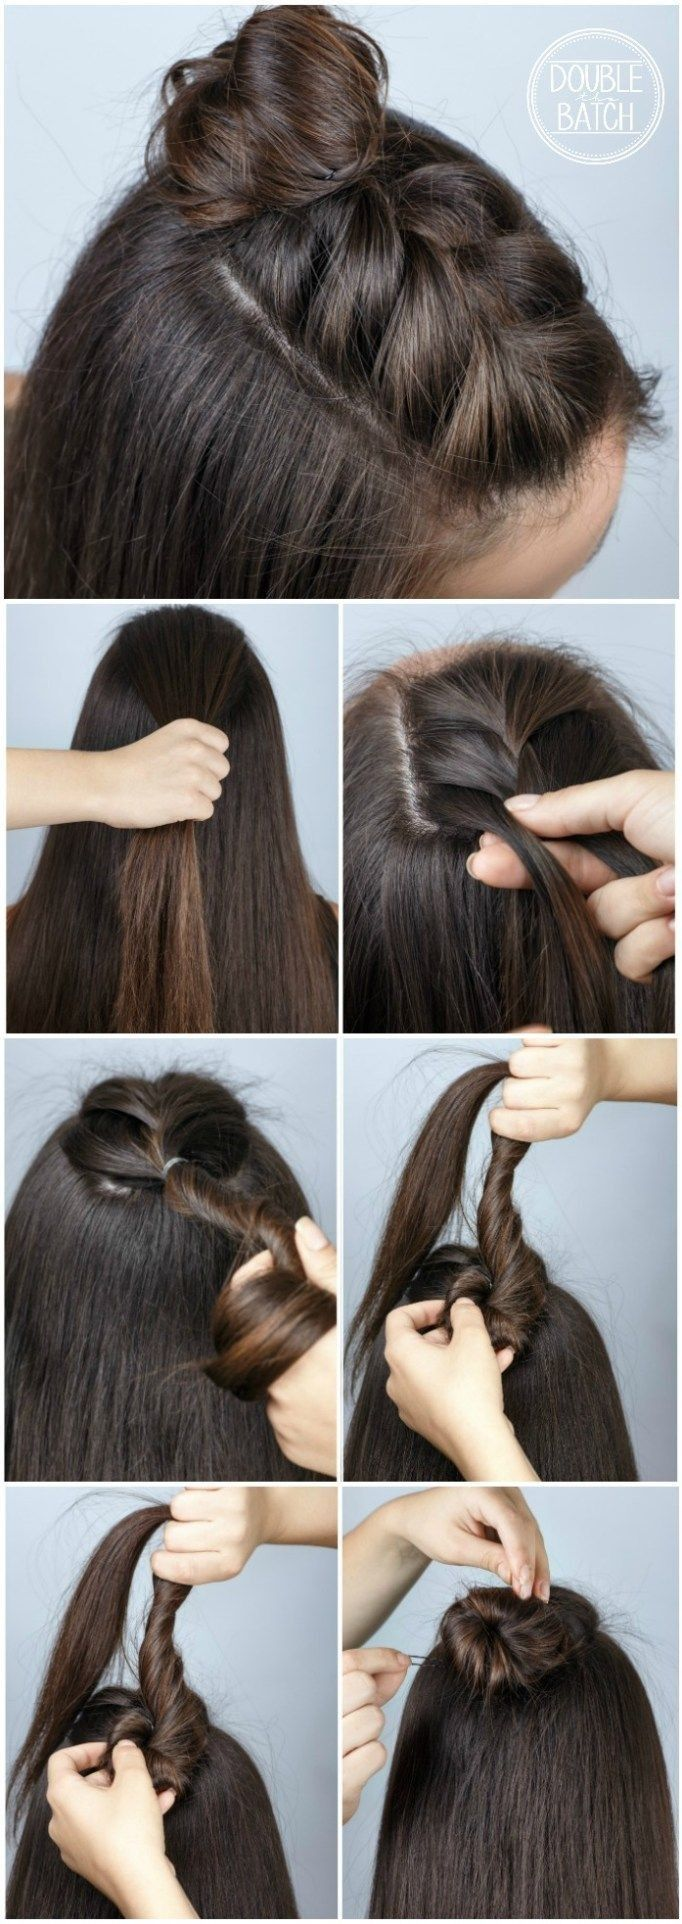 Pin by beata fedešova on vlasy pinterest school hair style and